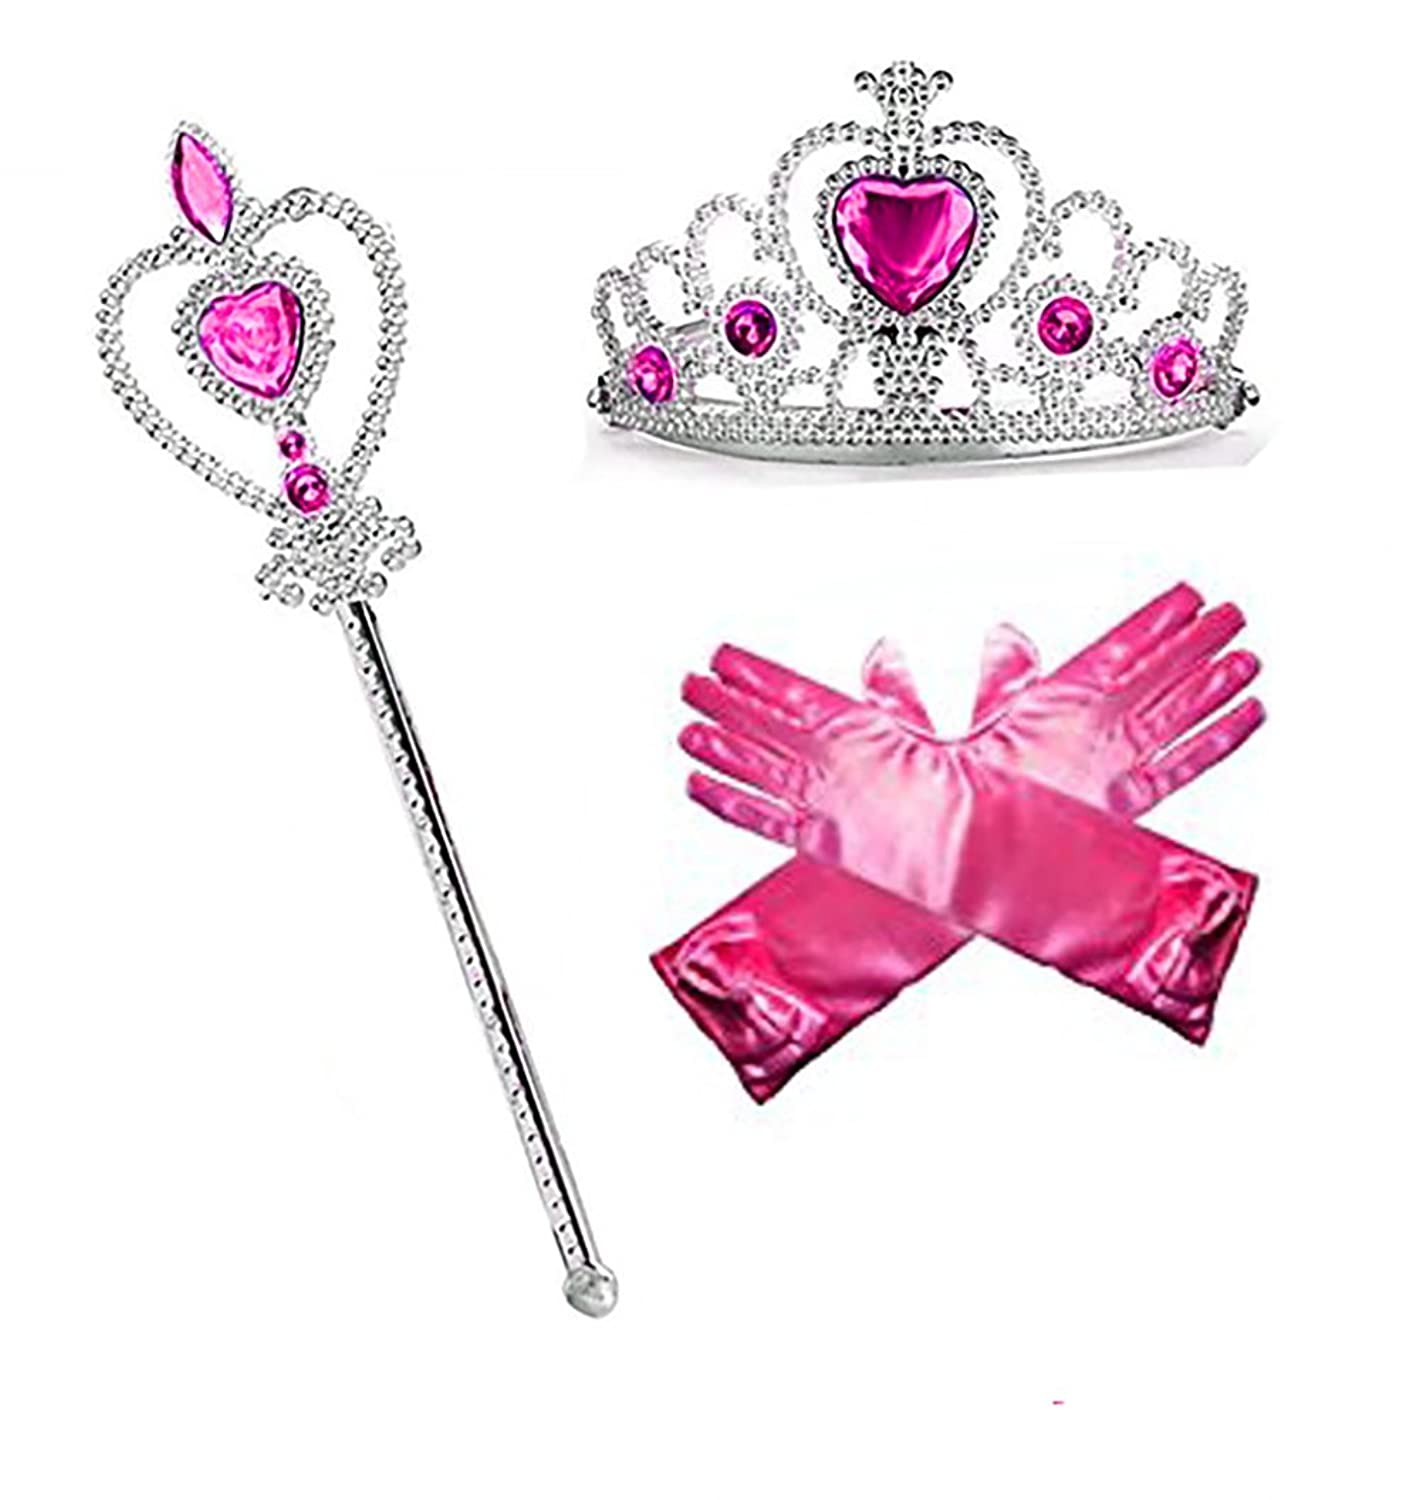 Princess Dress up Party Accessories - 3 Piece Gift Set: Gloves, Tiara and Wand